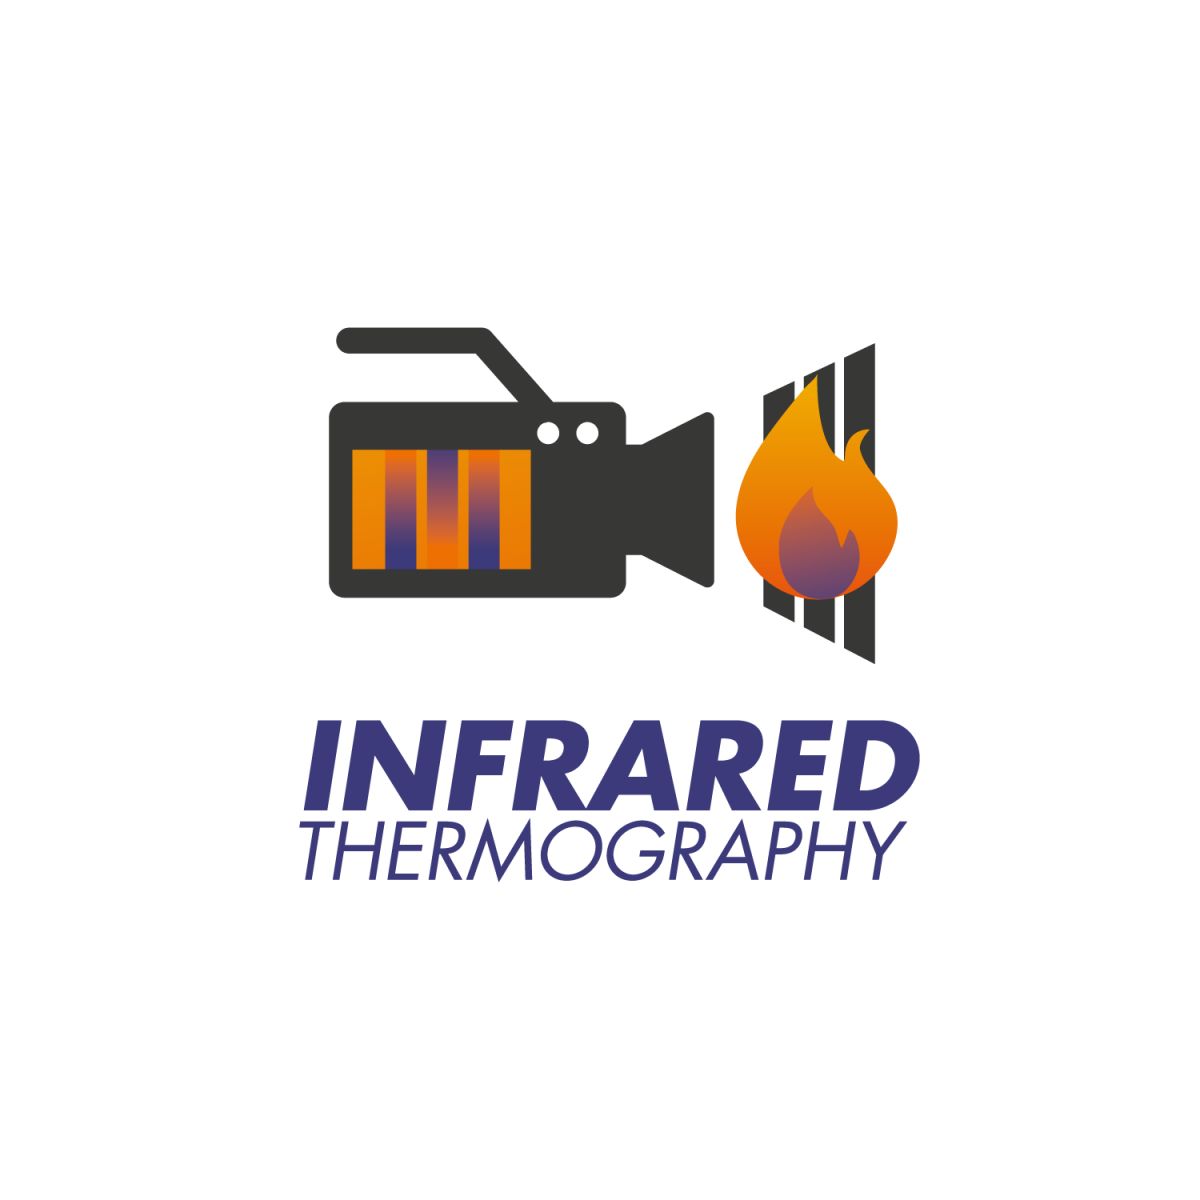 LOGO - THERMOGRAPHY